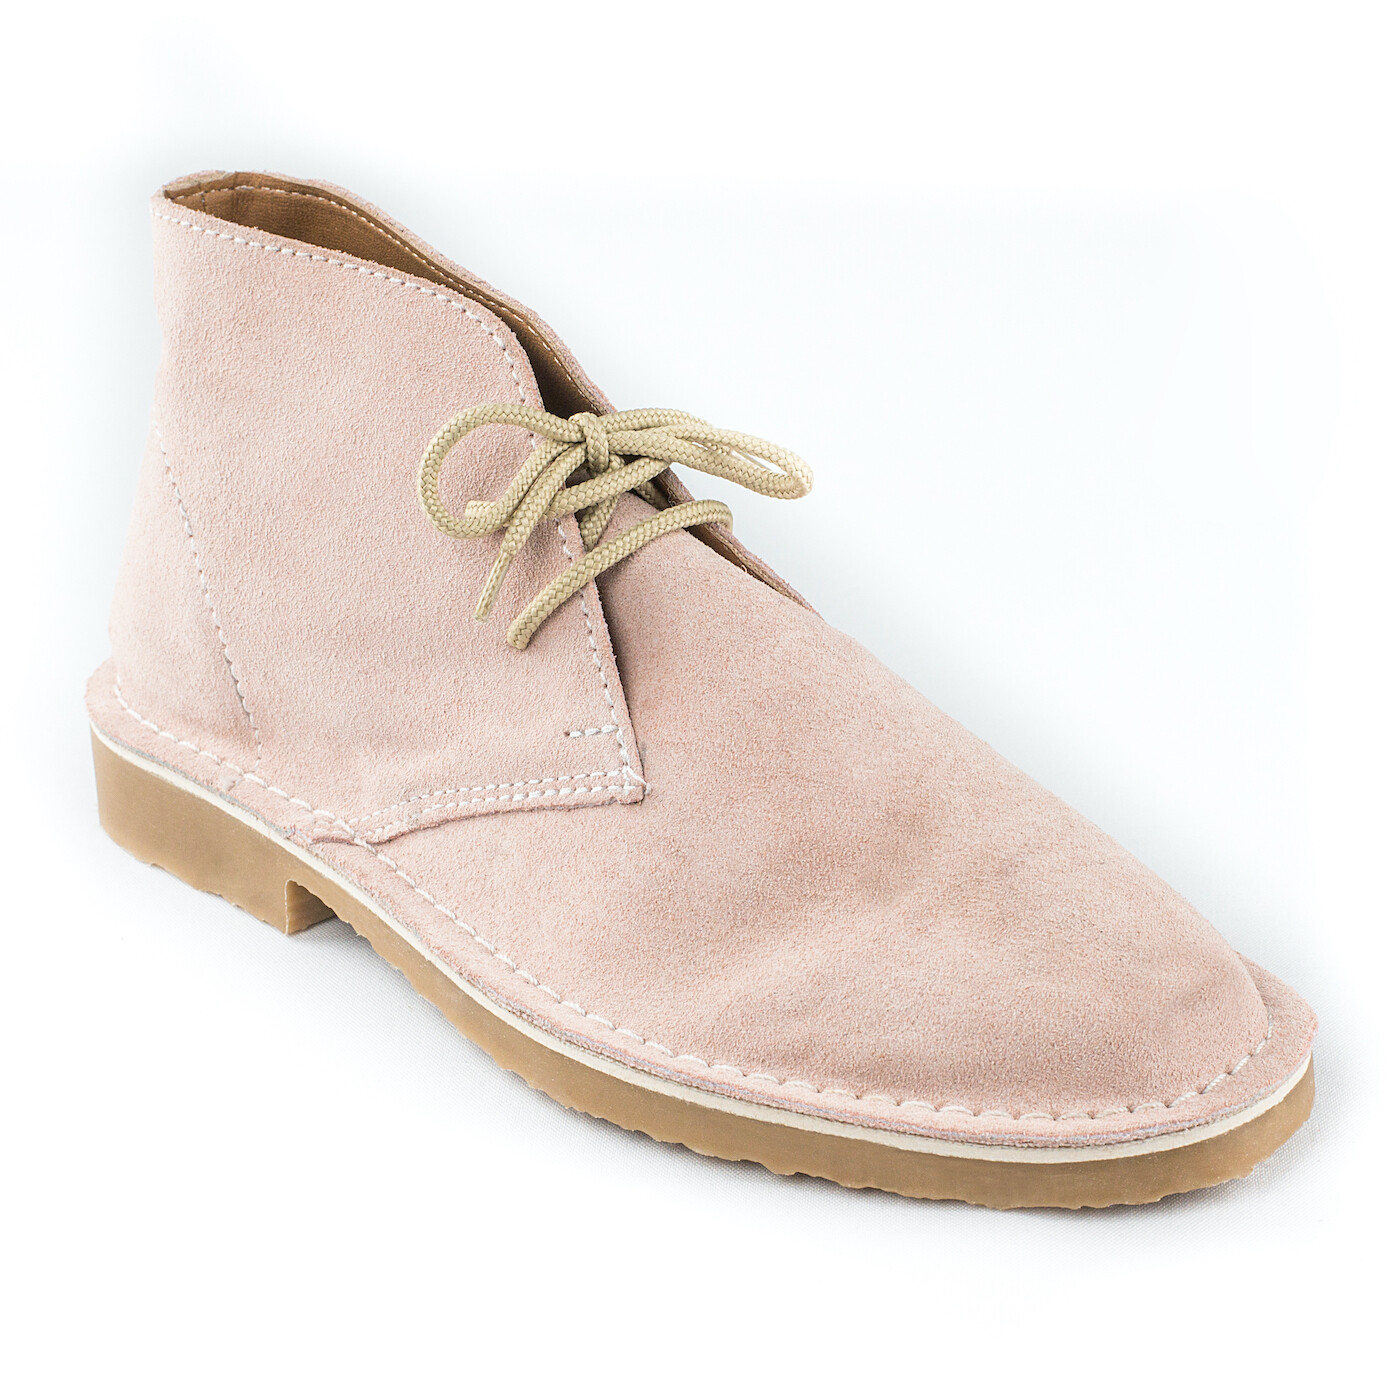 The Shiva Light Pink Suede Vellie